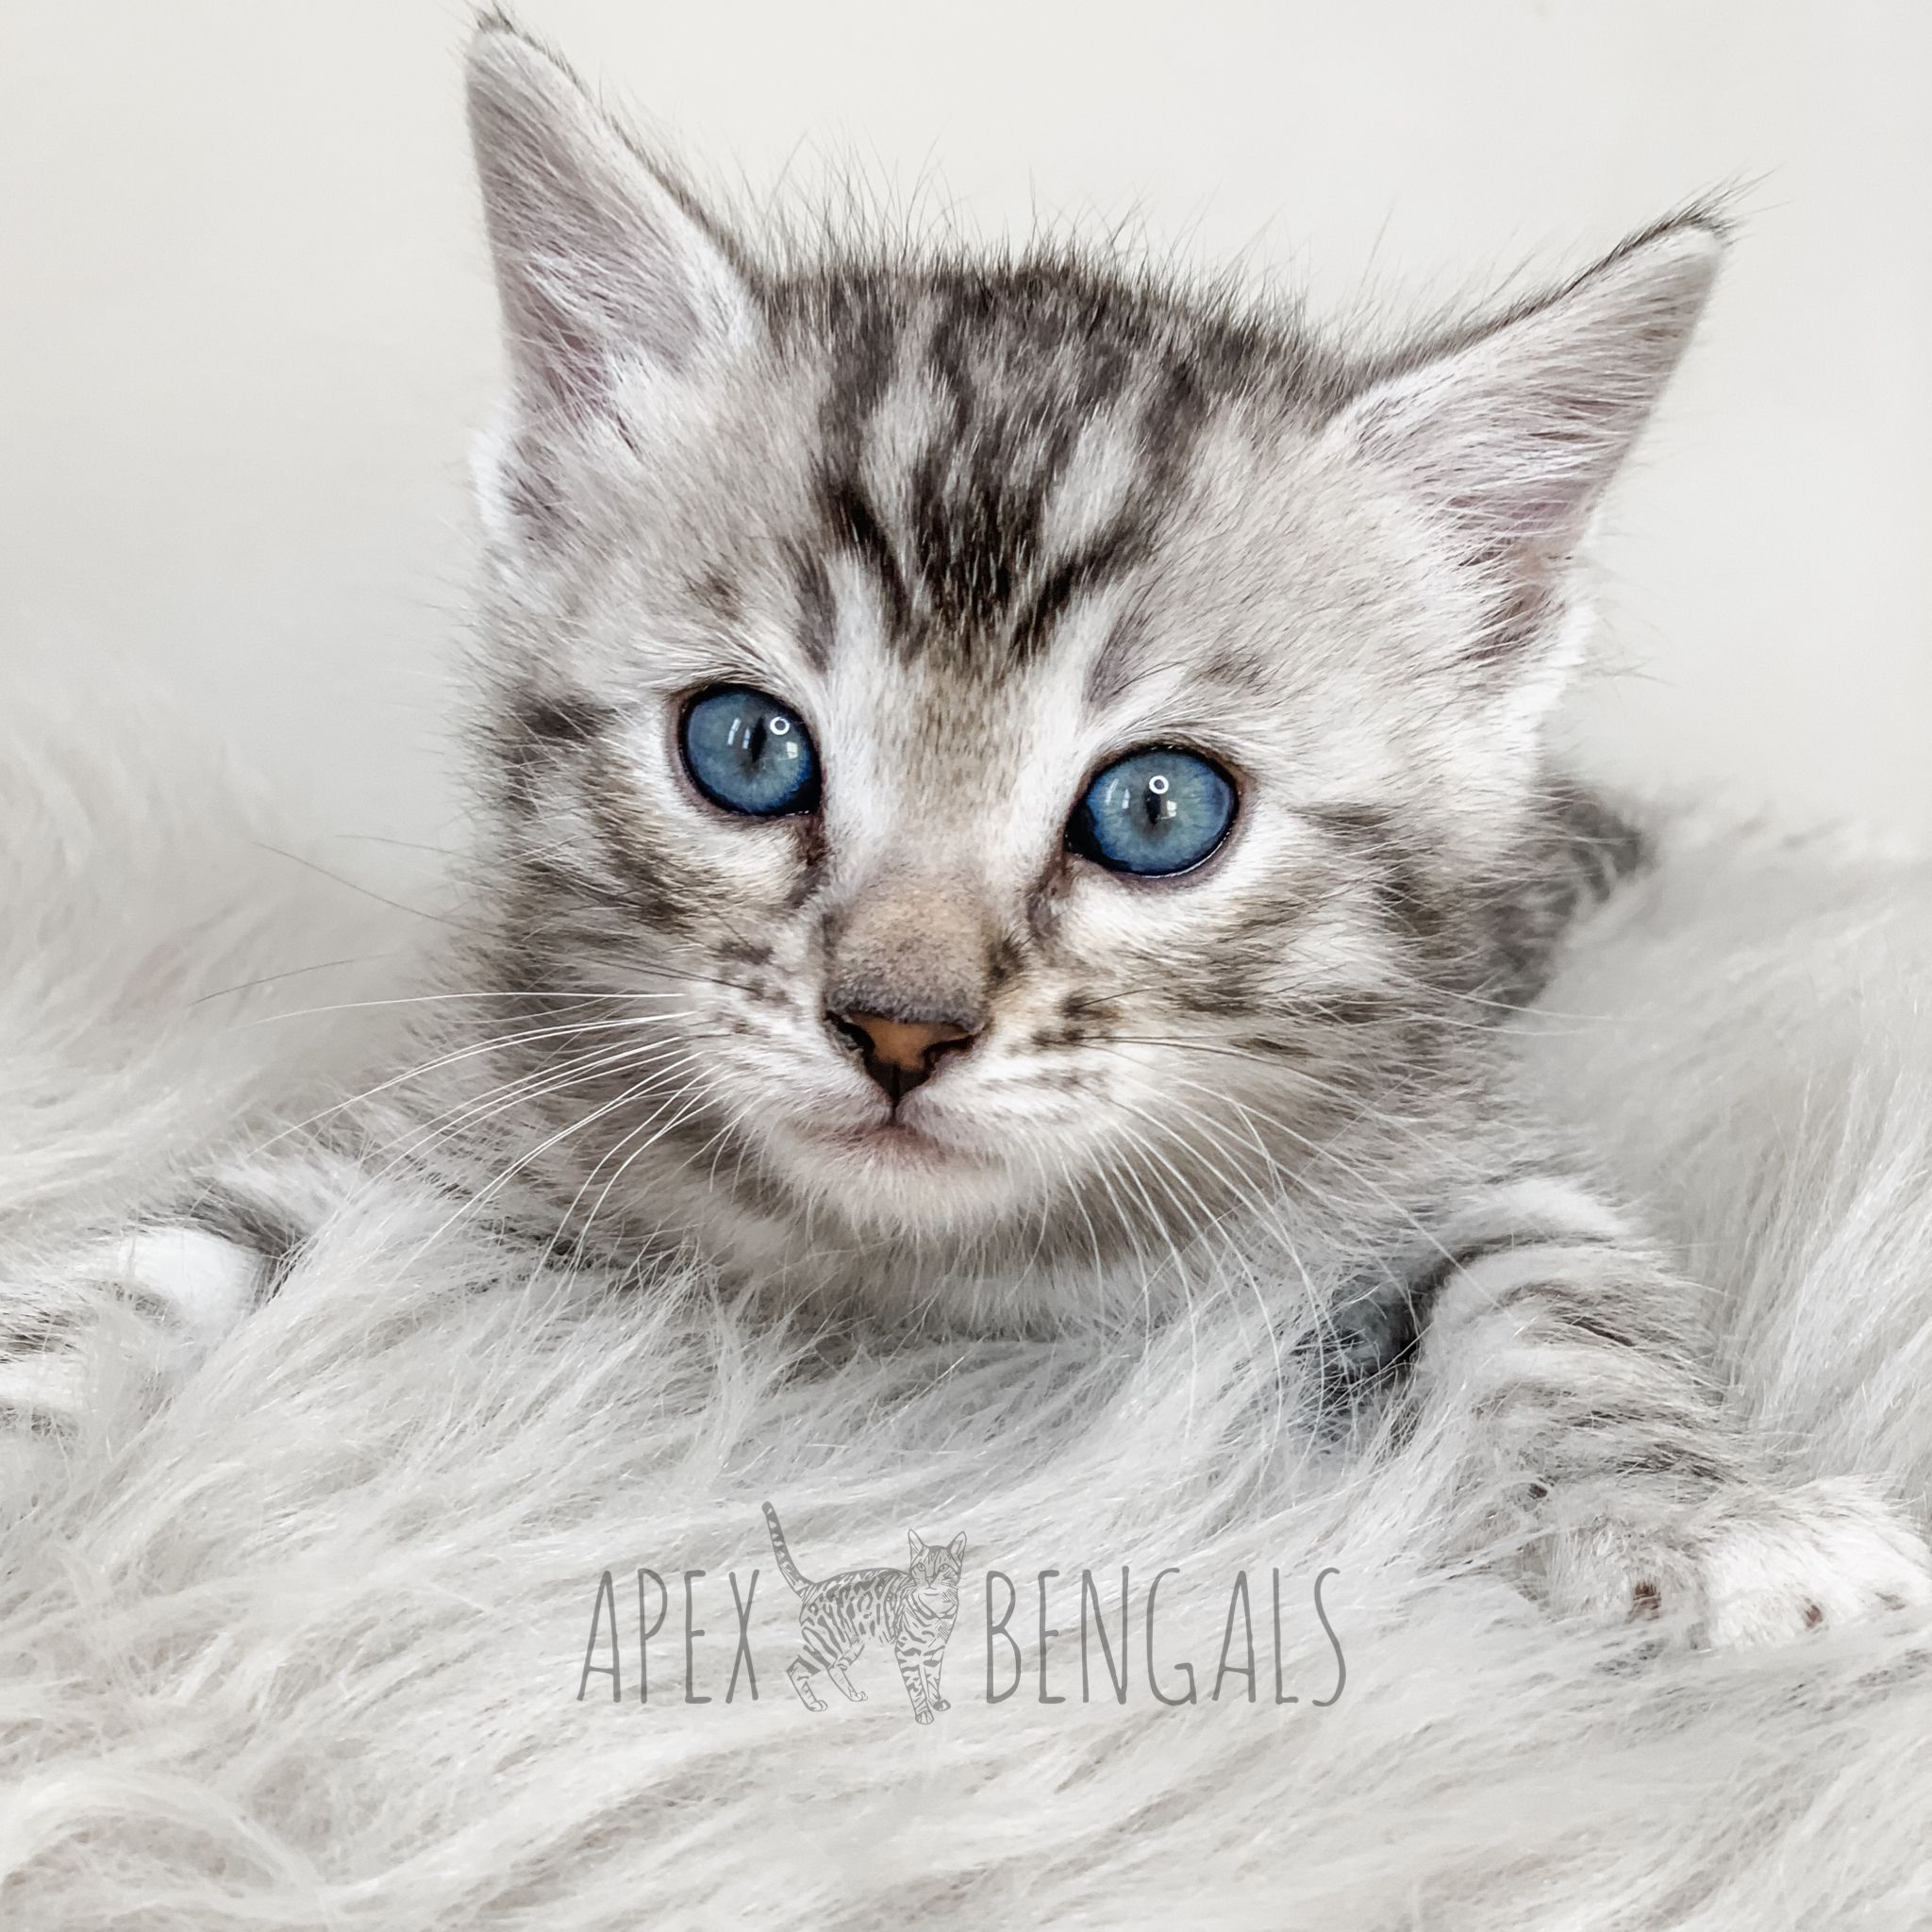 Silver Bengal Kitten From Apexbengals Apexbengals Bengal Kitten Silver Bengal Bengal Kittens For Sale